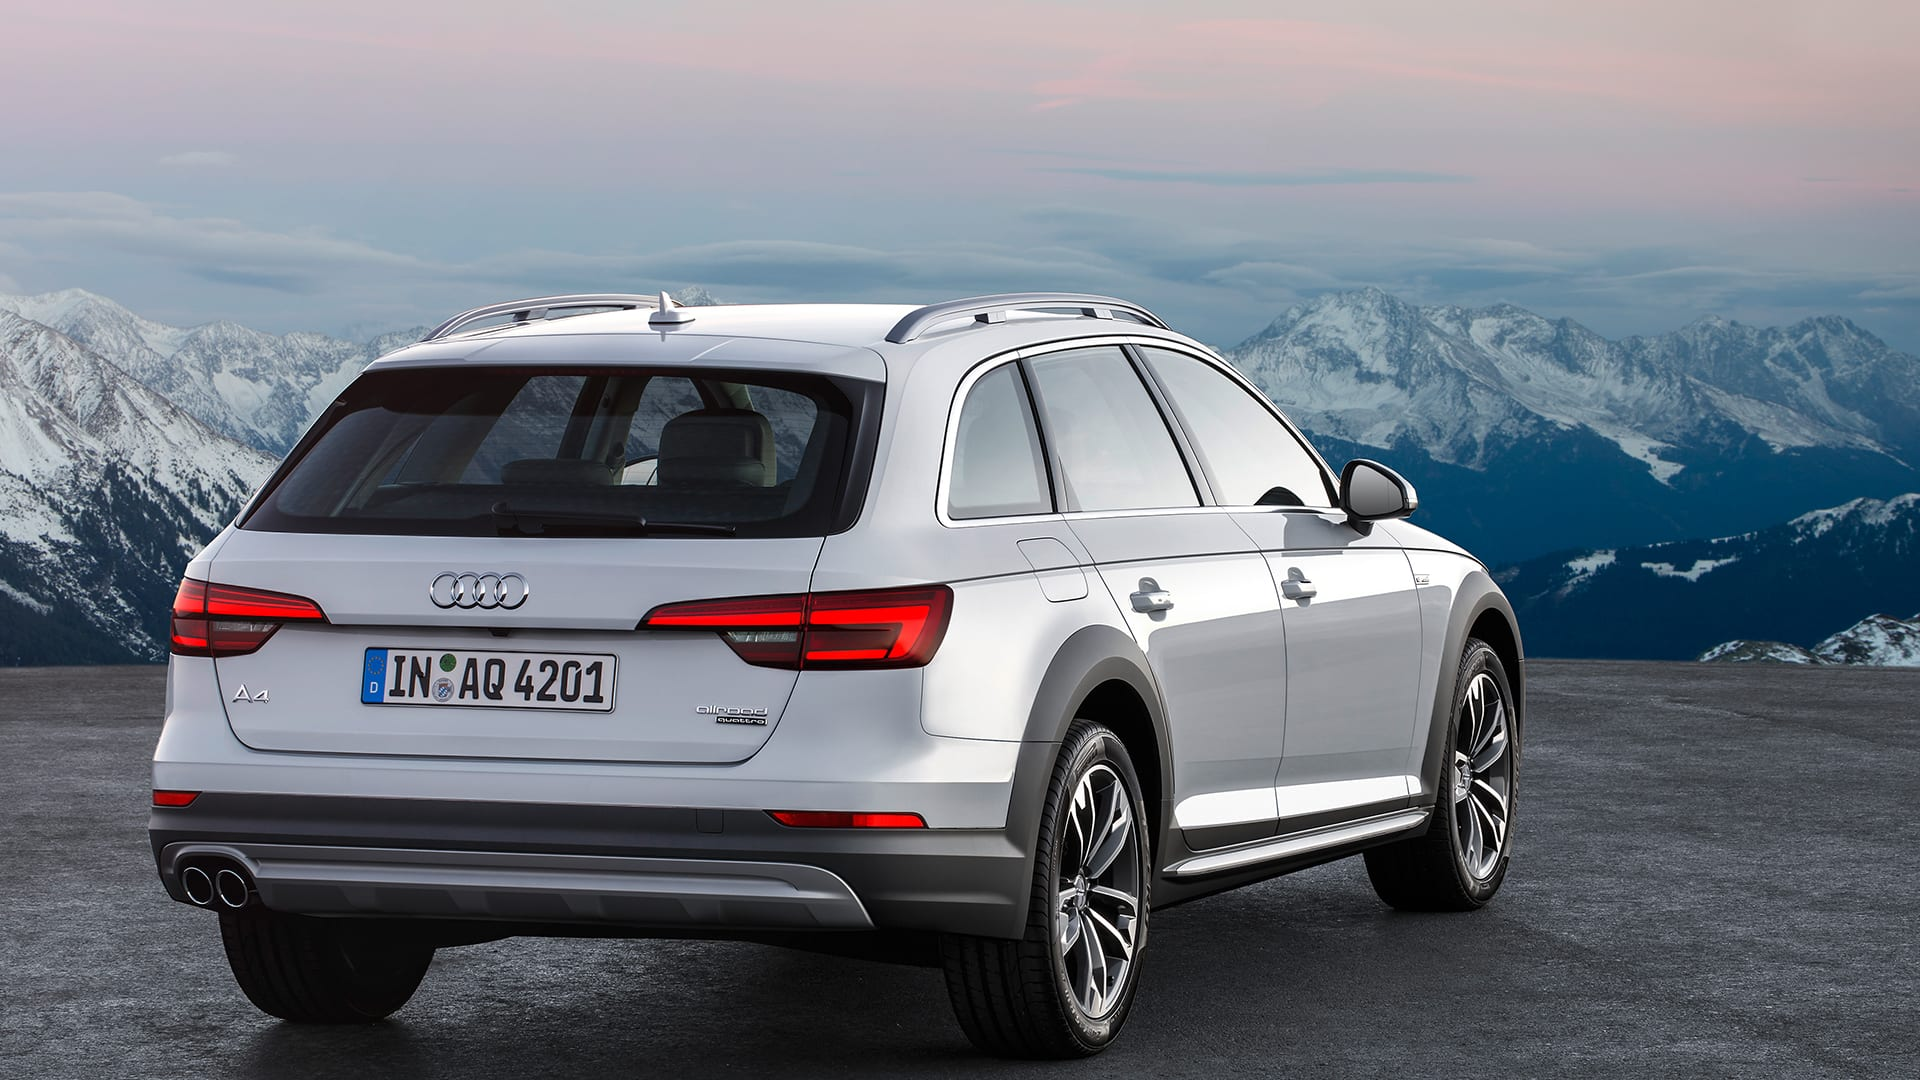 plus wagons audi news be powerful avant wagon photos built will that never ultra rendered the